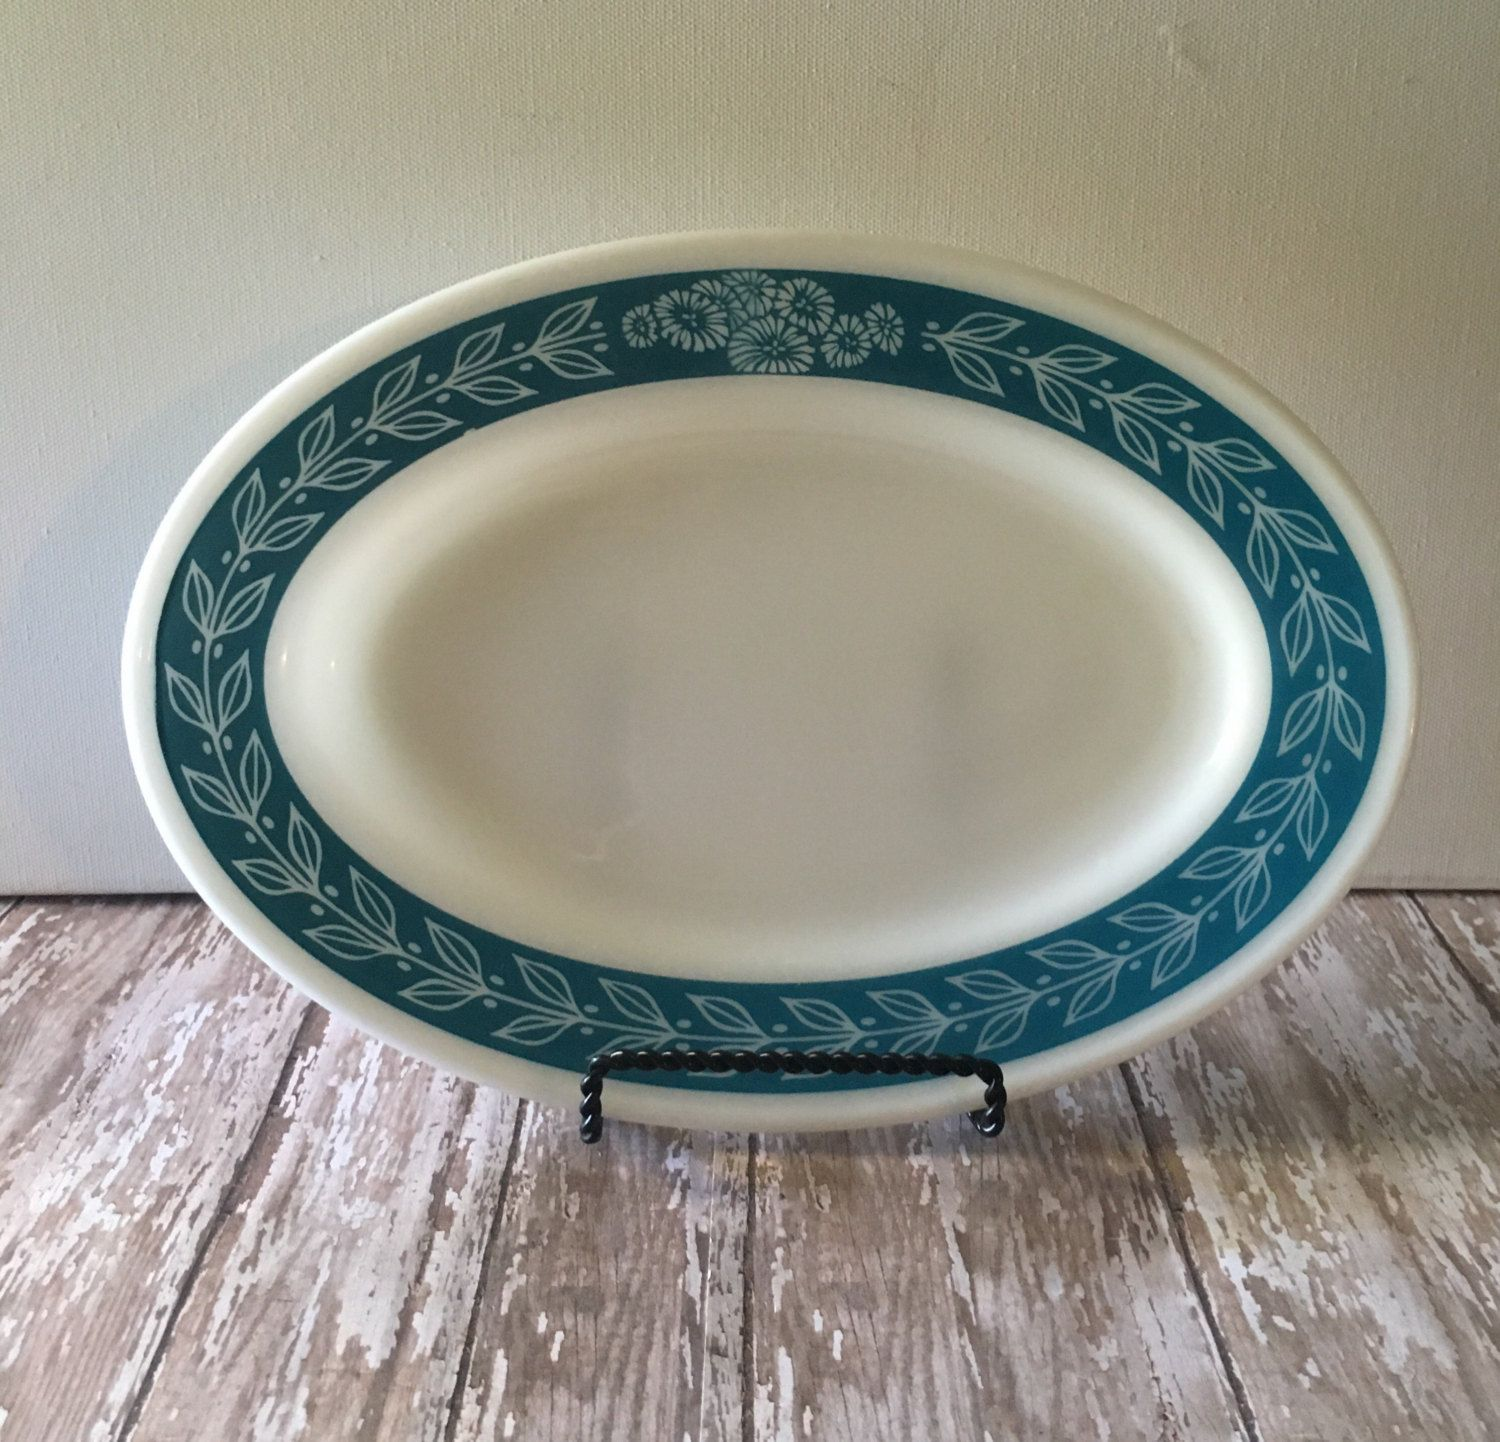 Vintage Pyrex Bluegrass Pattern Platter Pyrex Tableware by Corning Made in USA\u2026 : pyrex dinnerware patterns - pezcame.com